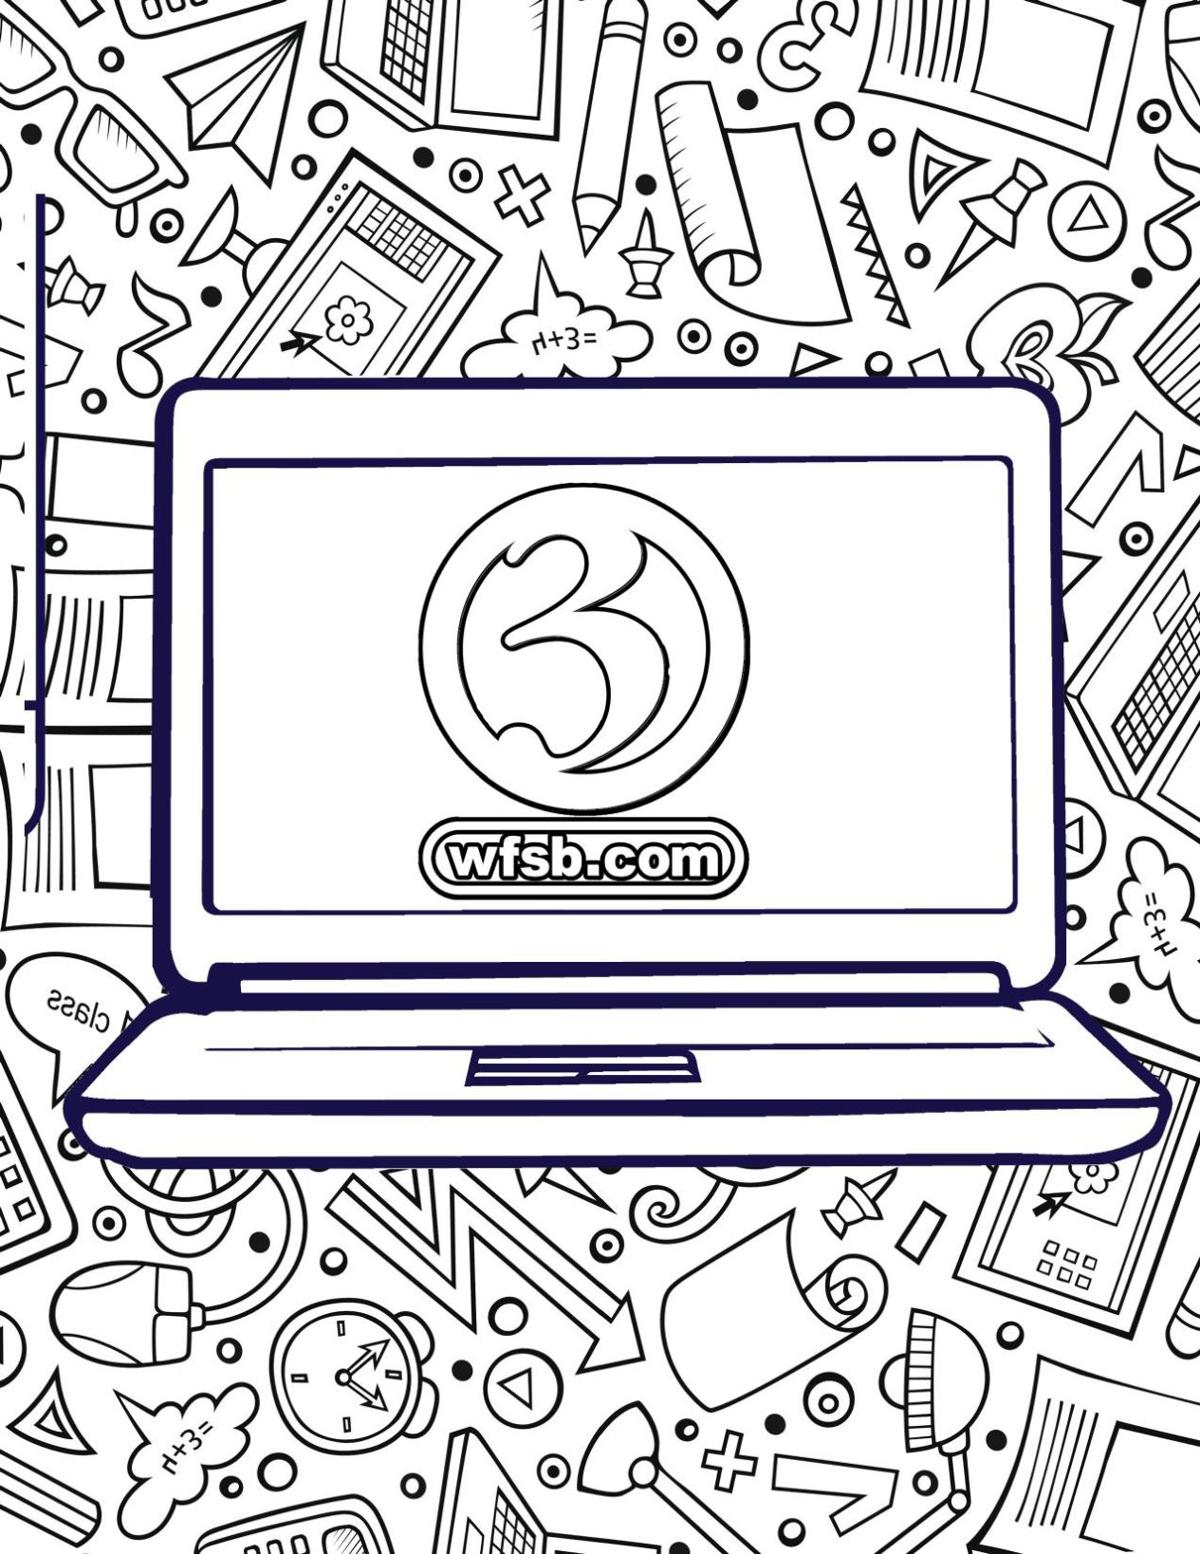 WFSB.com Coloring Page